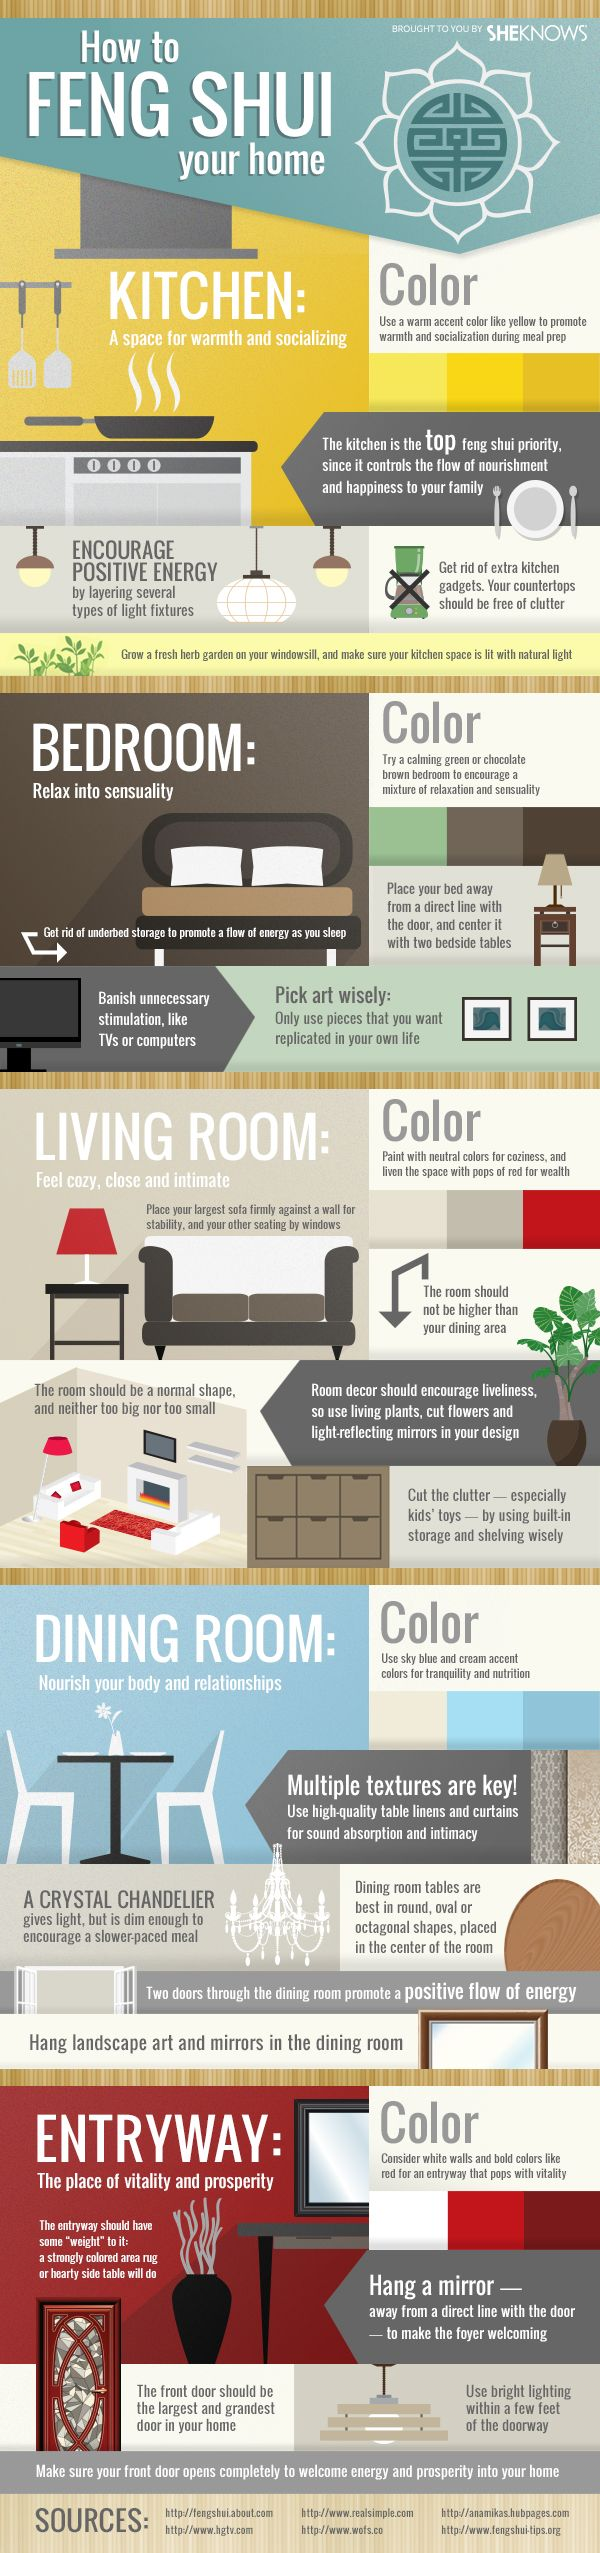 How To Feng Shui Your Home A Room By Room Guide How To Feng Shui Your Home Home Decor Tips Easy Home Decor